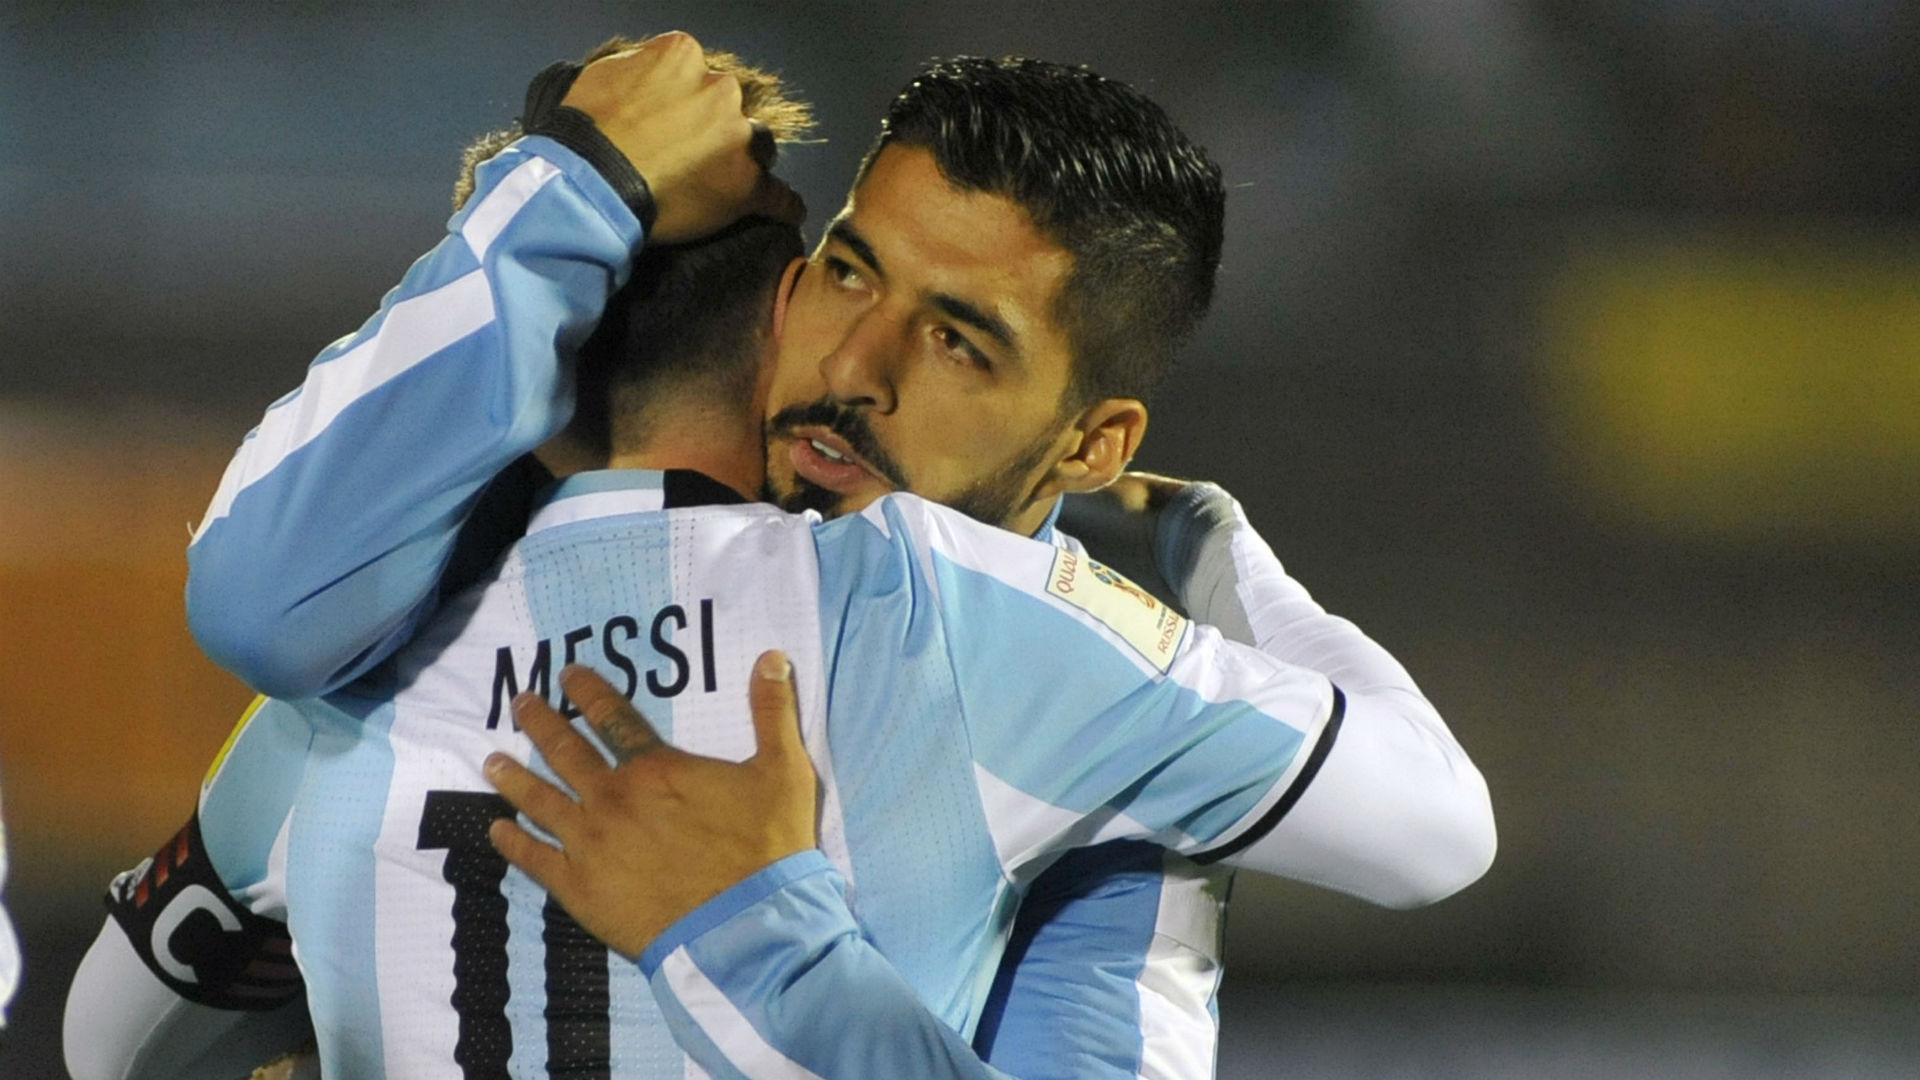 Amazing Chile World Cup 2018 - lionel-messi-luis-suarez-argentina-uruguay-world-cup-qualifying_5i5axqa27ah01bxqvrsbgh5t9  You Should Have_139820 .jpg?t\u003d994135094